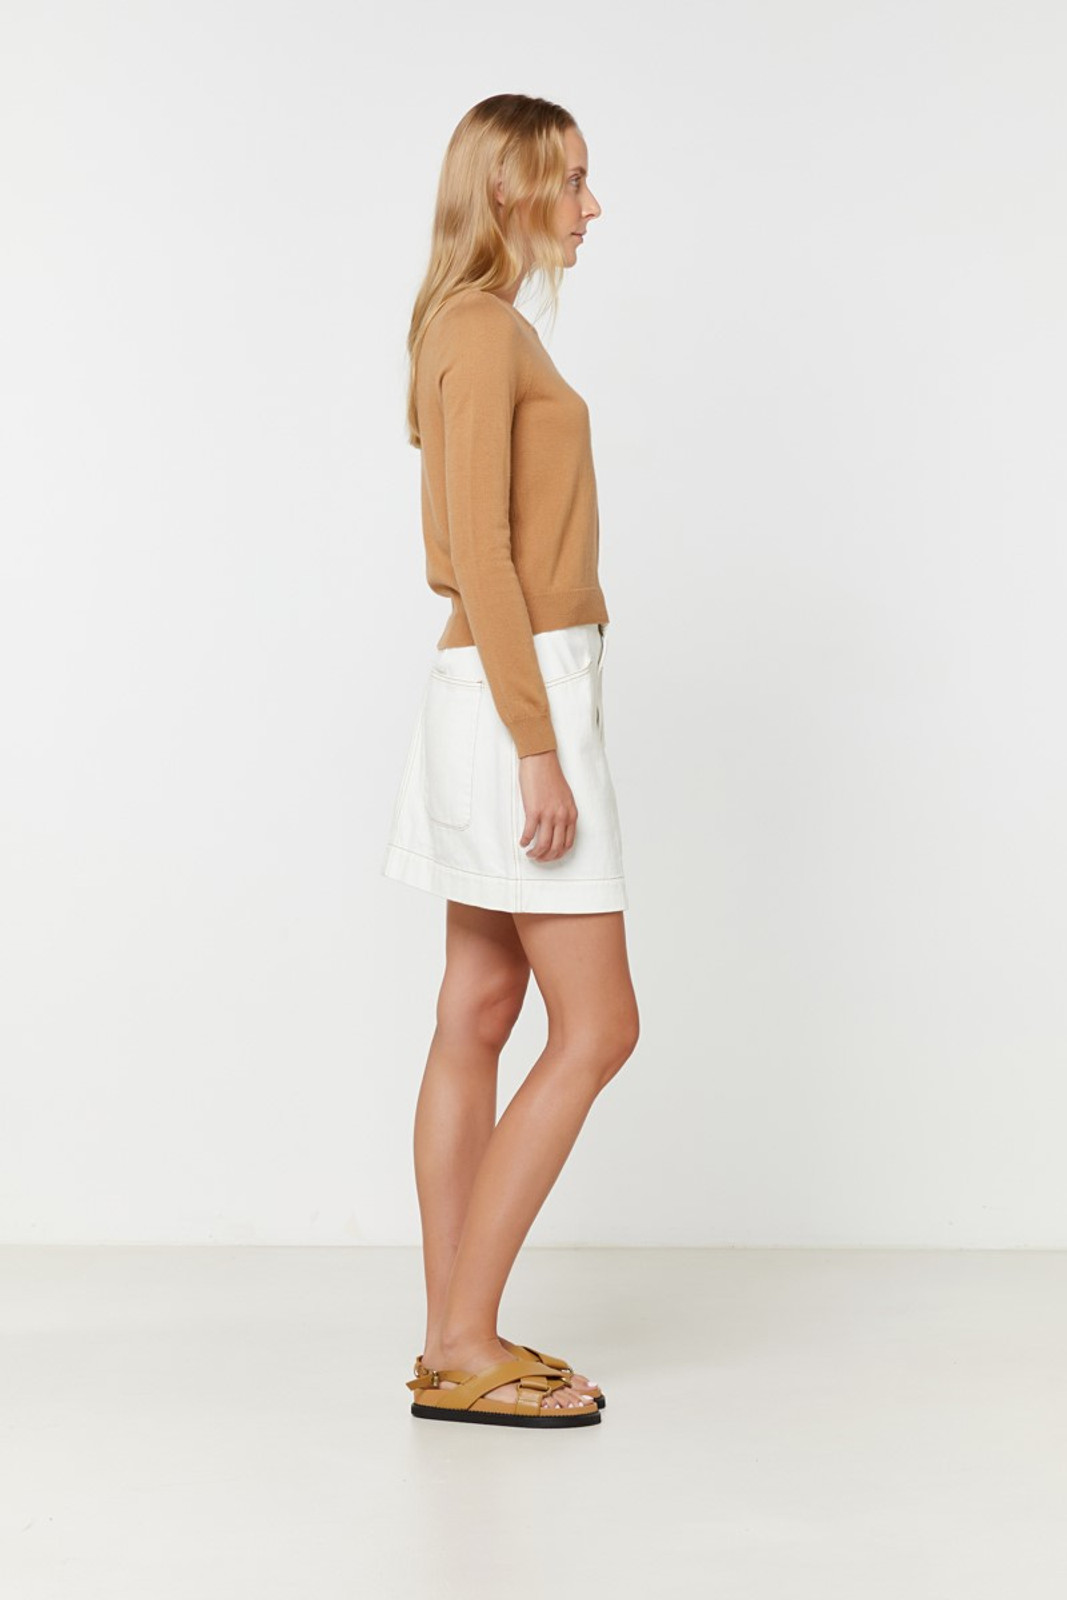 Elka Collective Gale Knit Neutrals  5